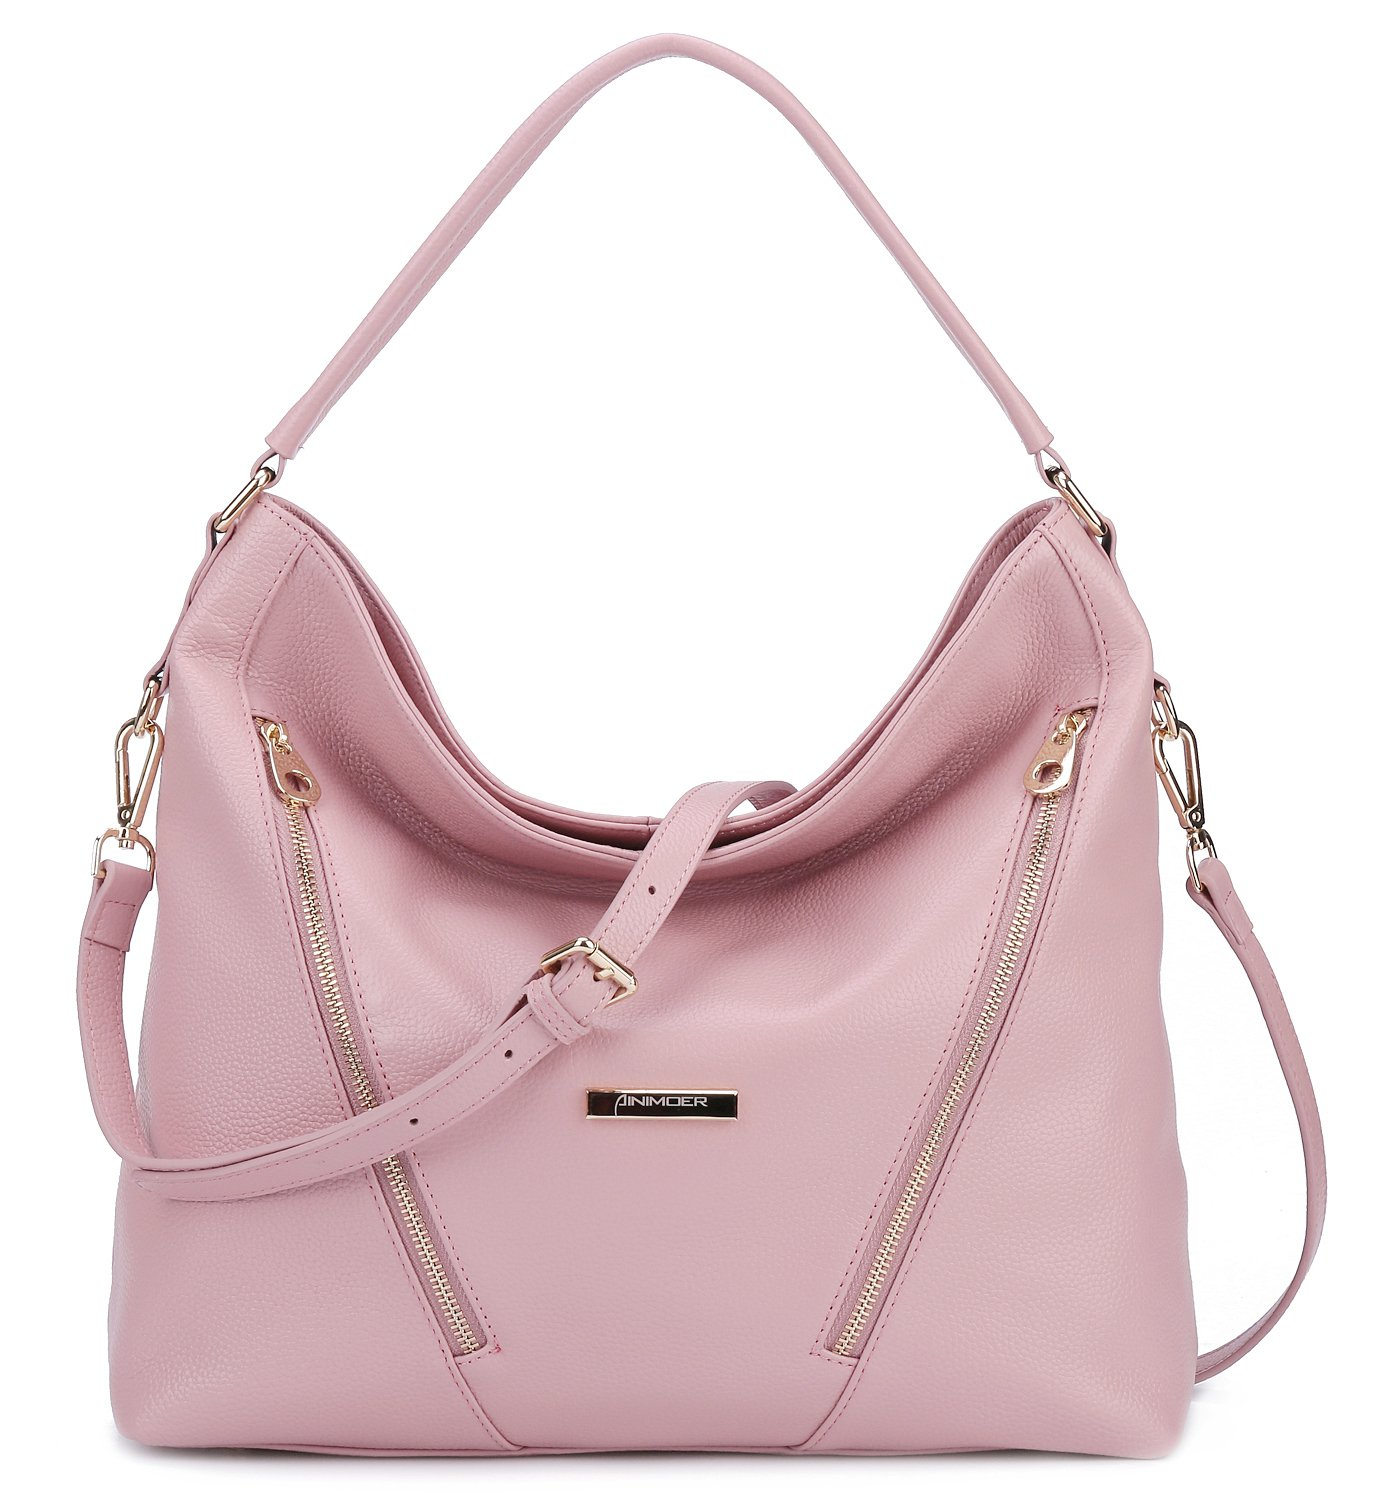 4558e897e7 BIG SALE-AINIMOER Womens Leather Vintage Shoulder Bag Ladies Handbags Tote  Top-handle Purse Cross Body Bags (Pink)